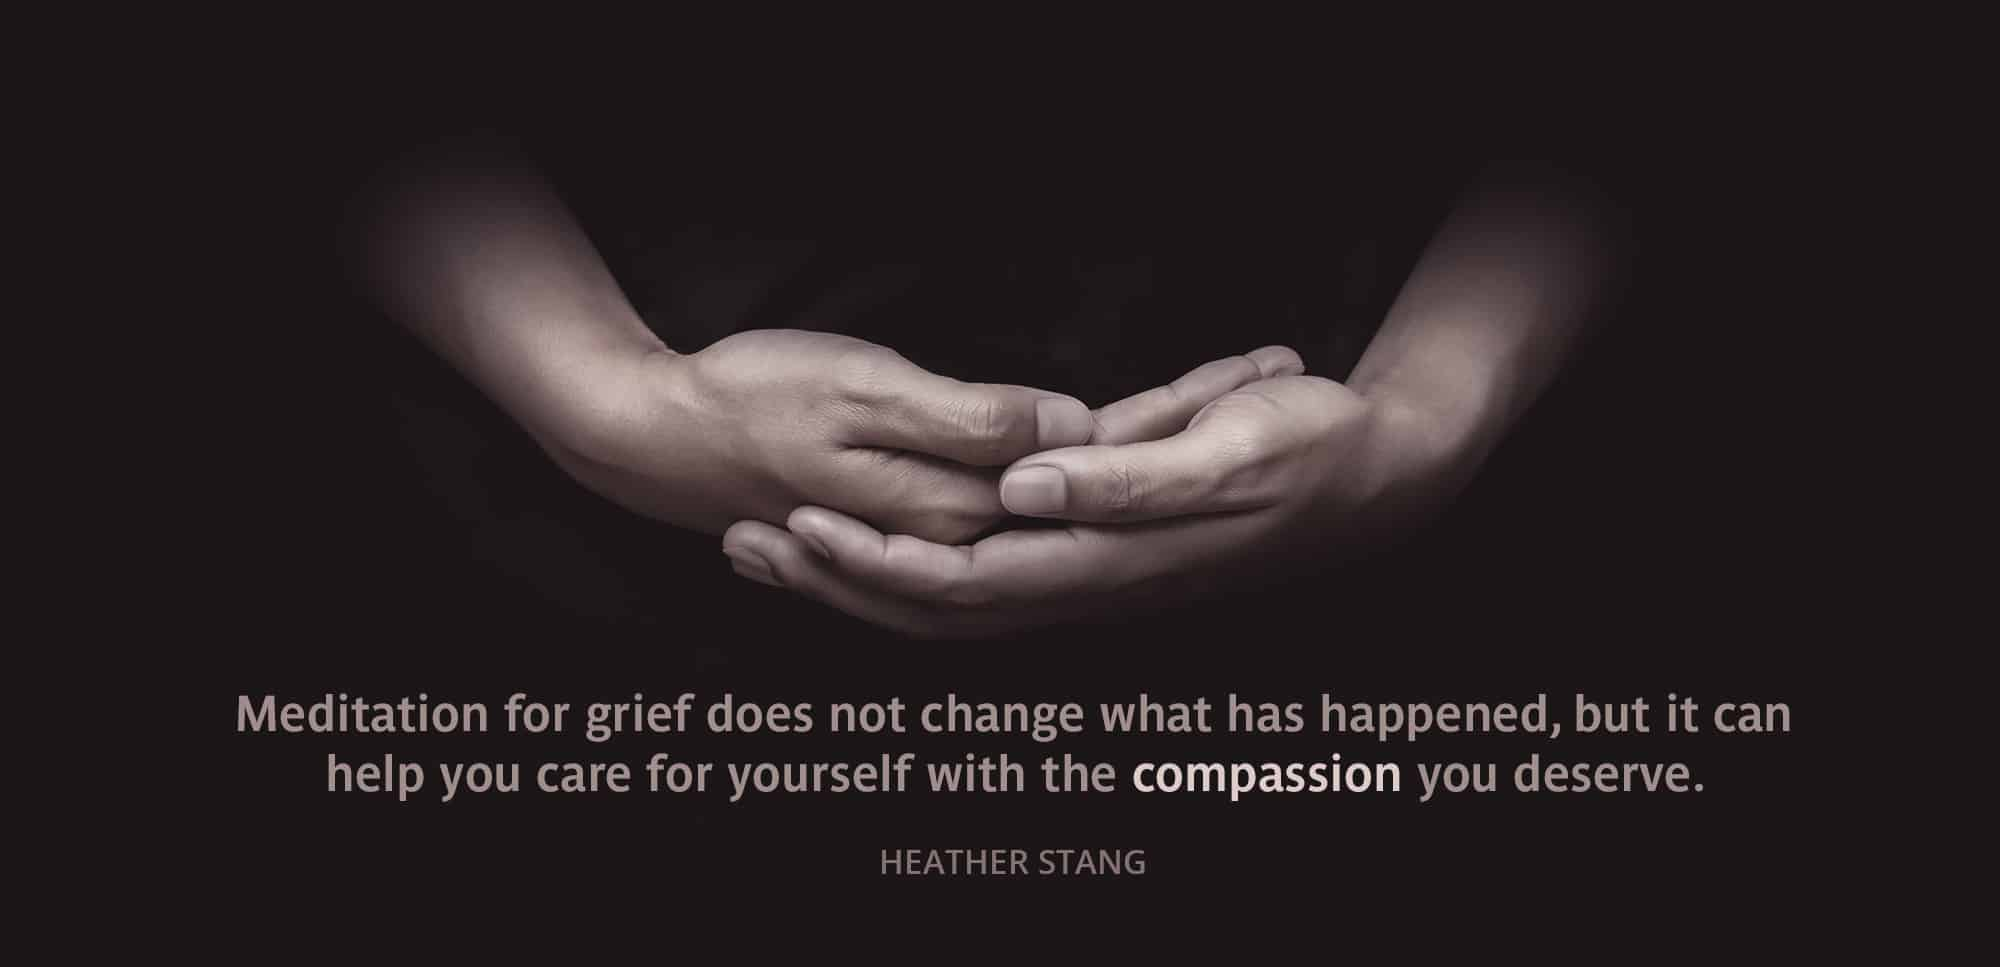 meditation for grief and loss heather stang